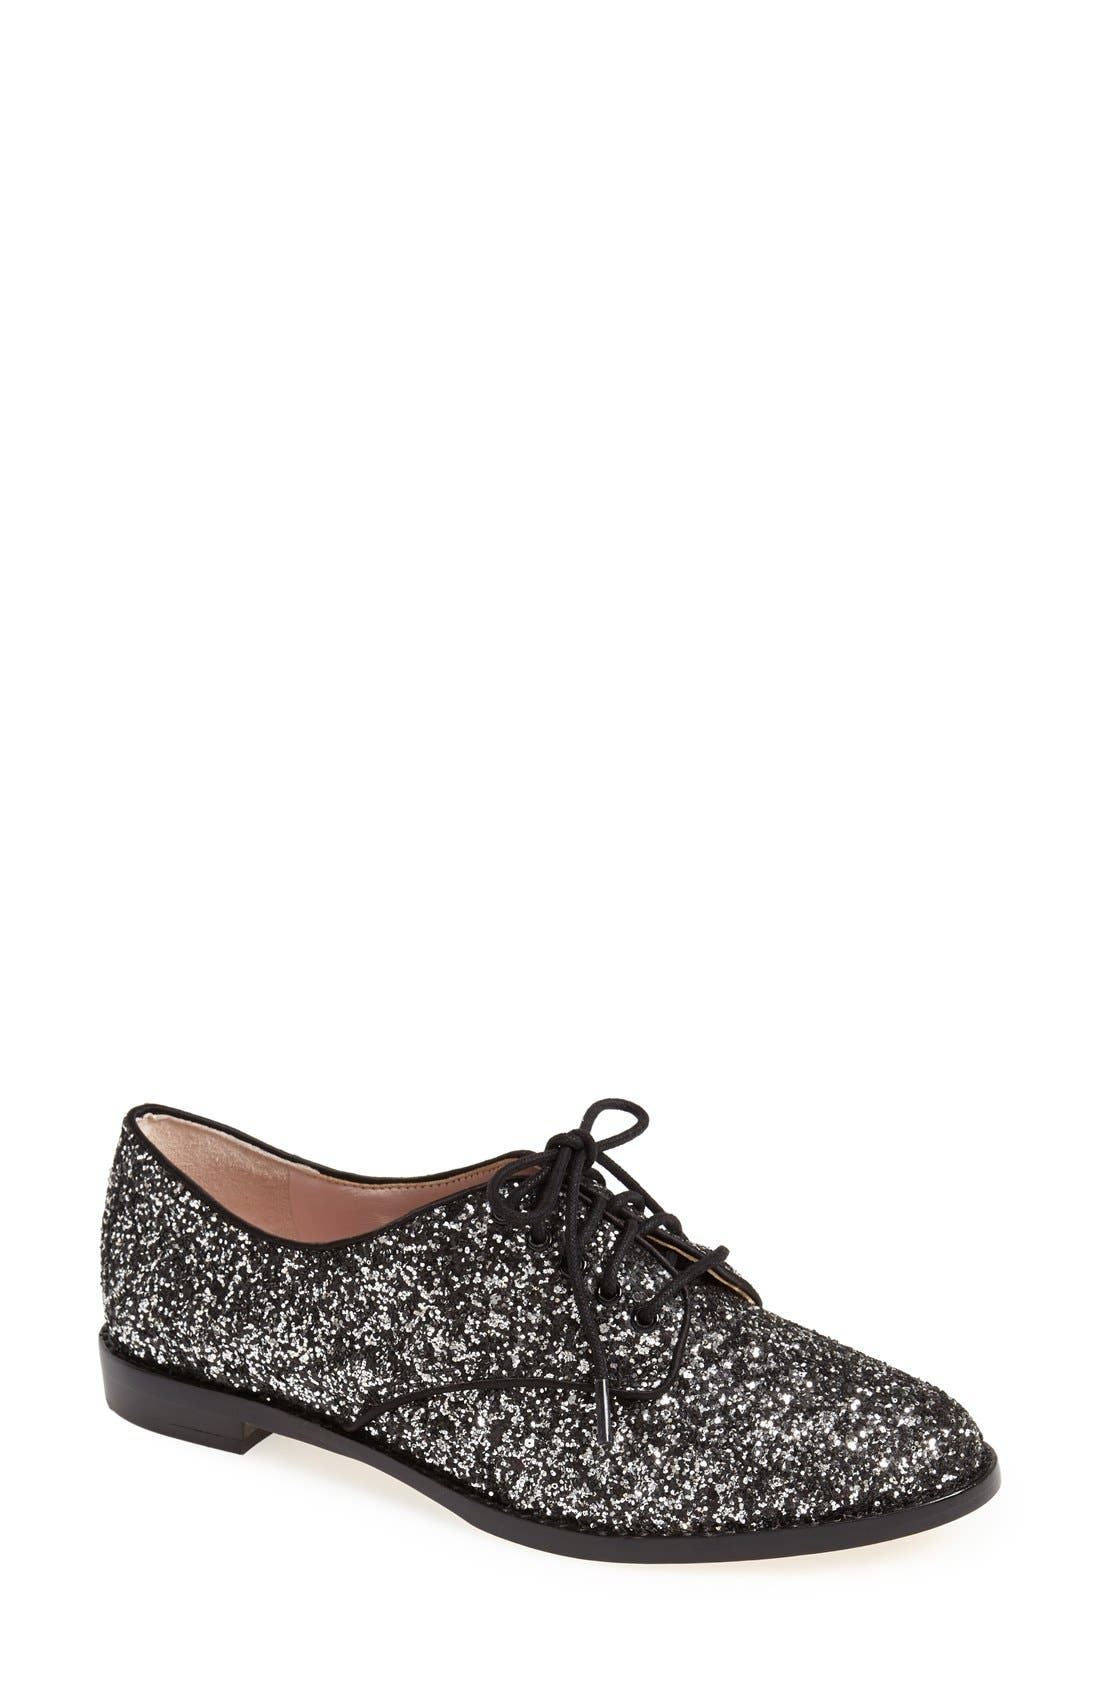 Main Image - kate spade new york 'paxton' oxford (Women)